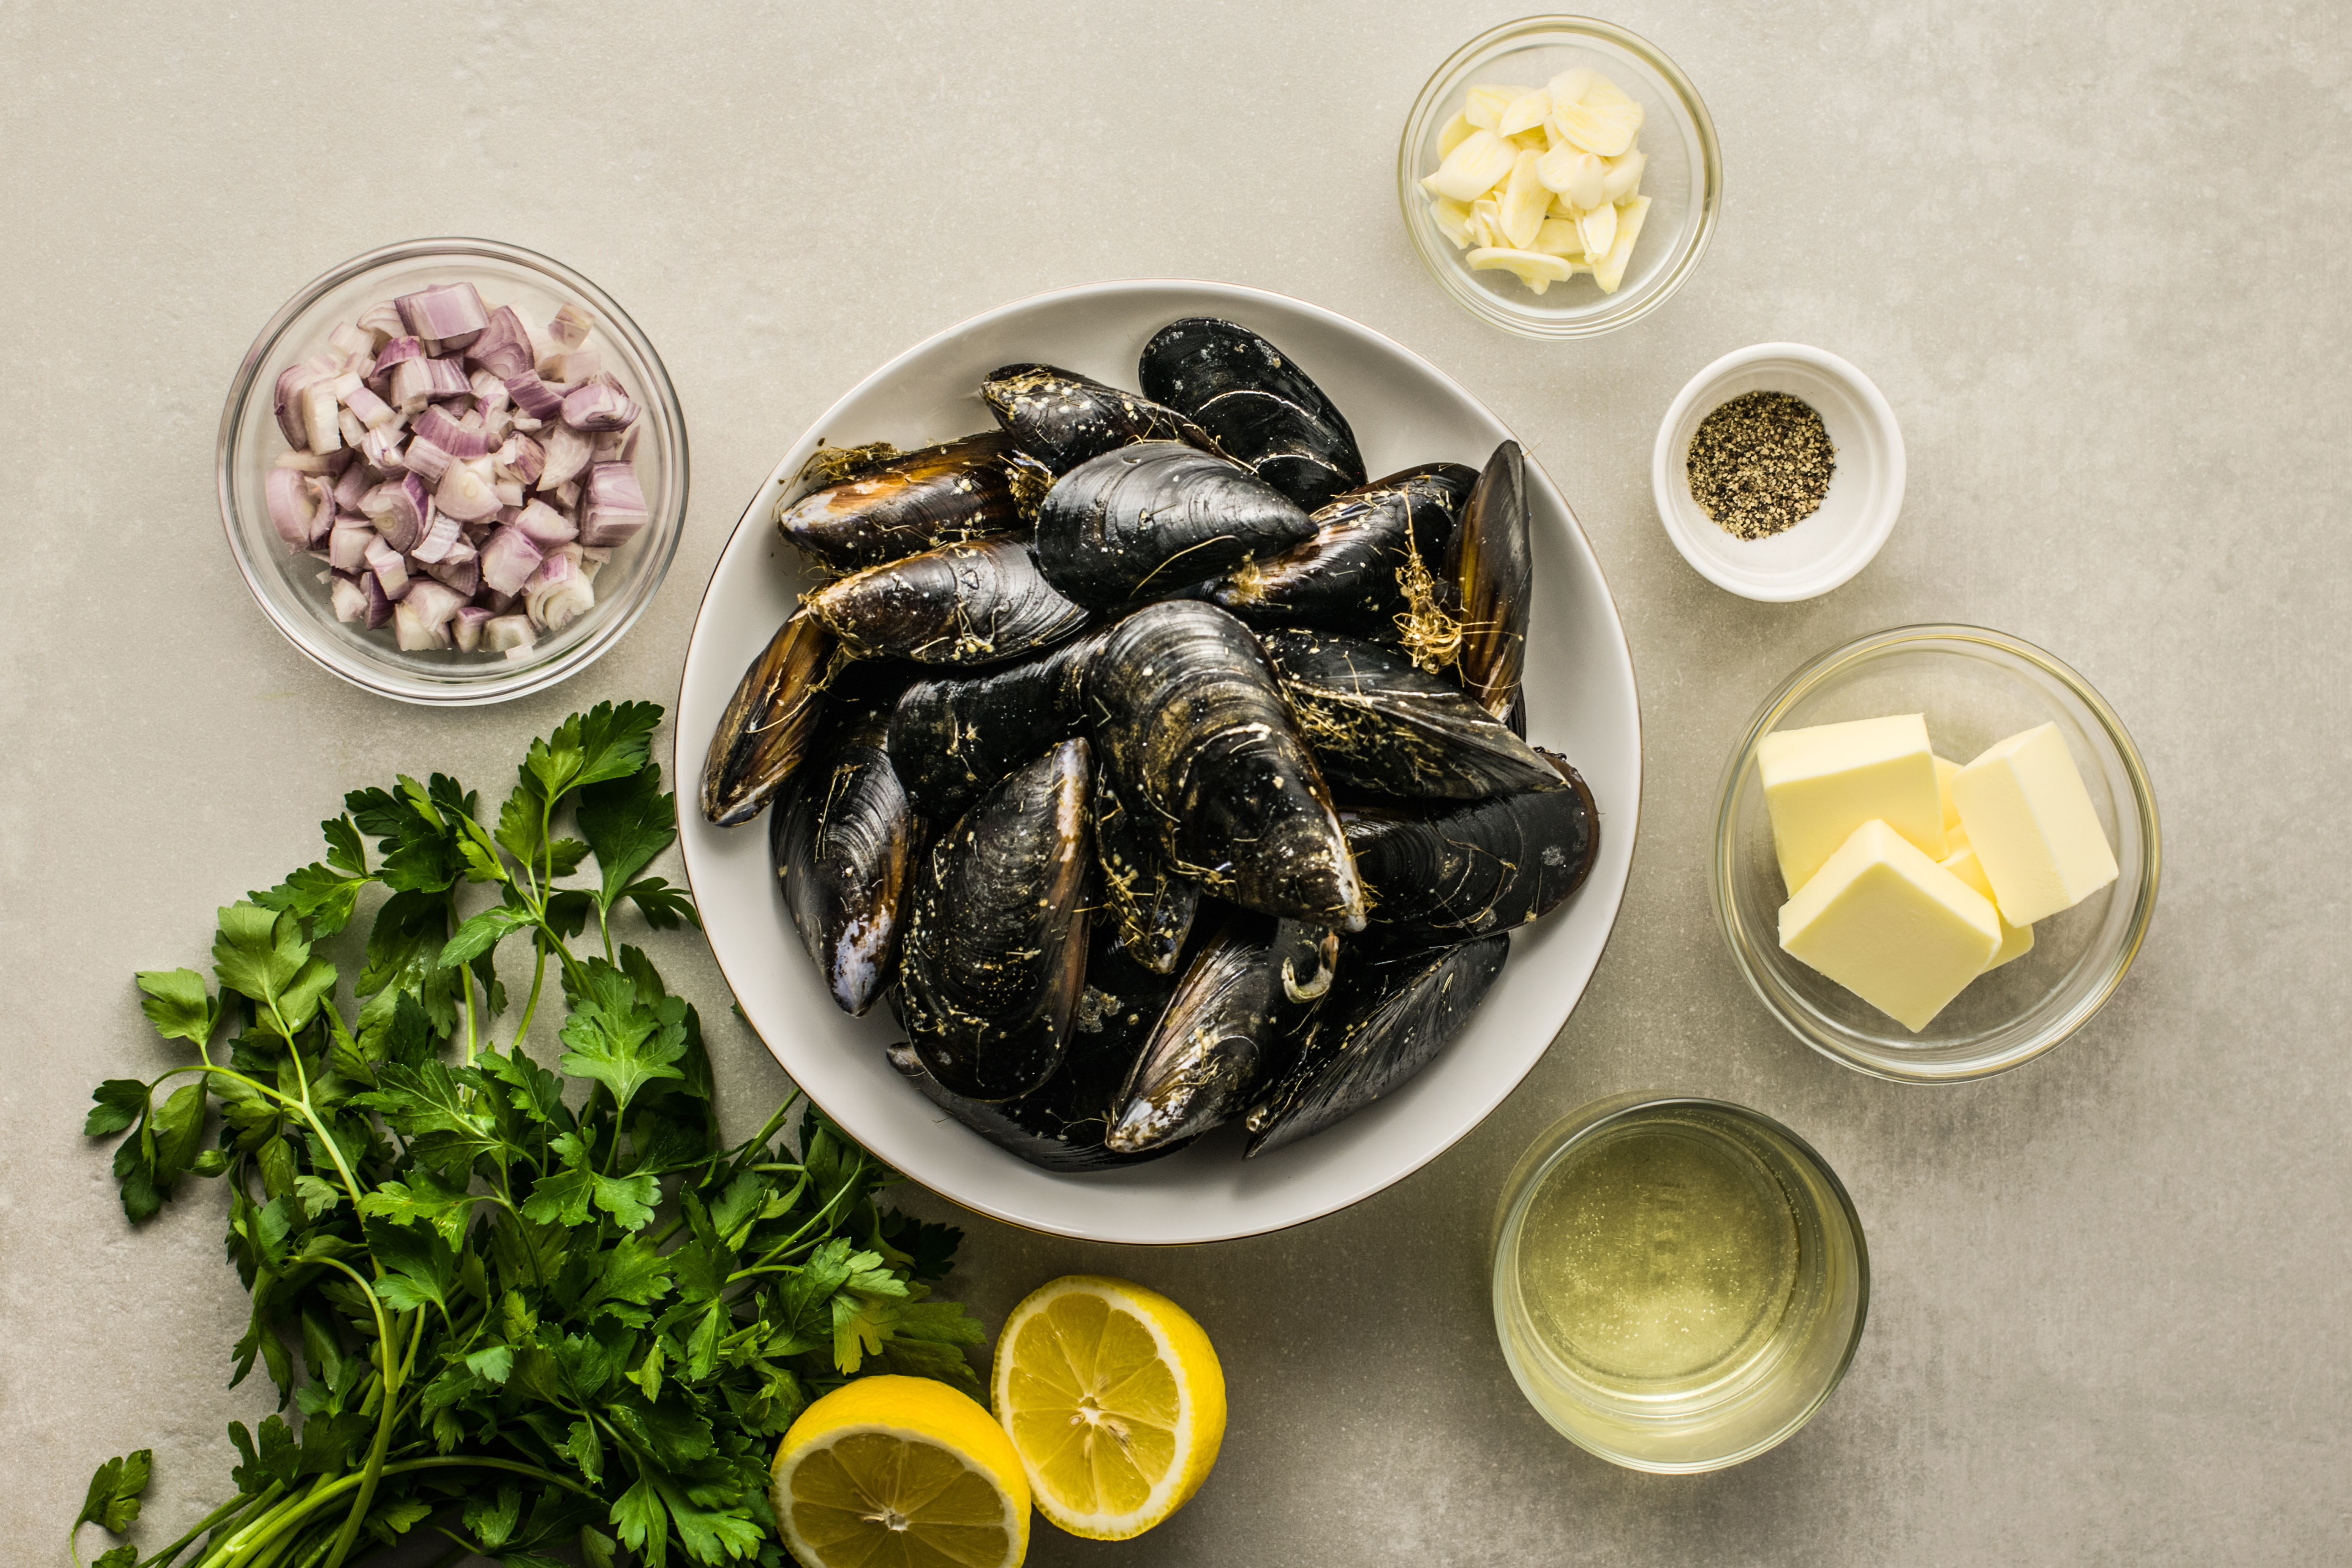 Ingredients for steam mussels